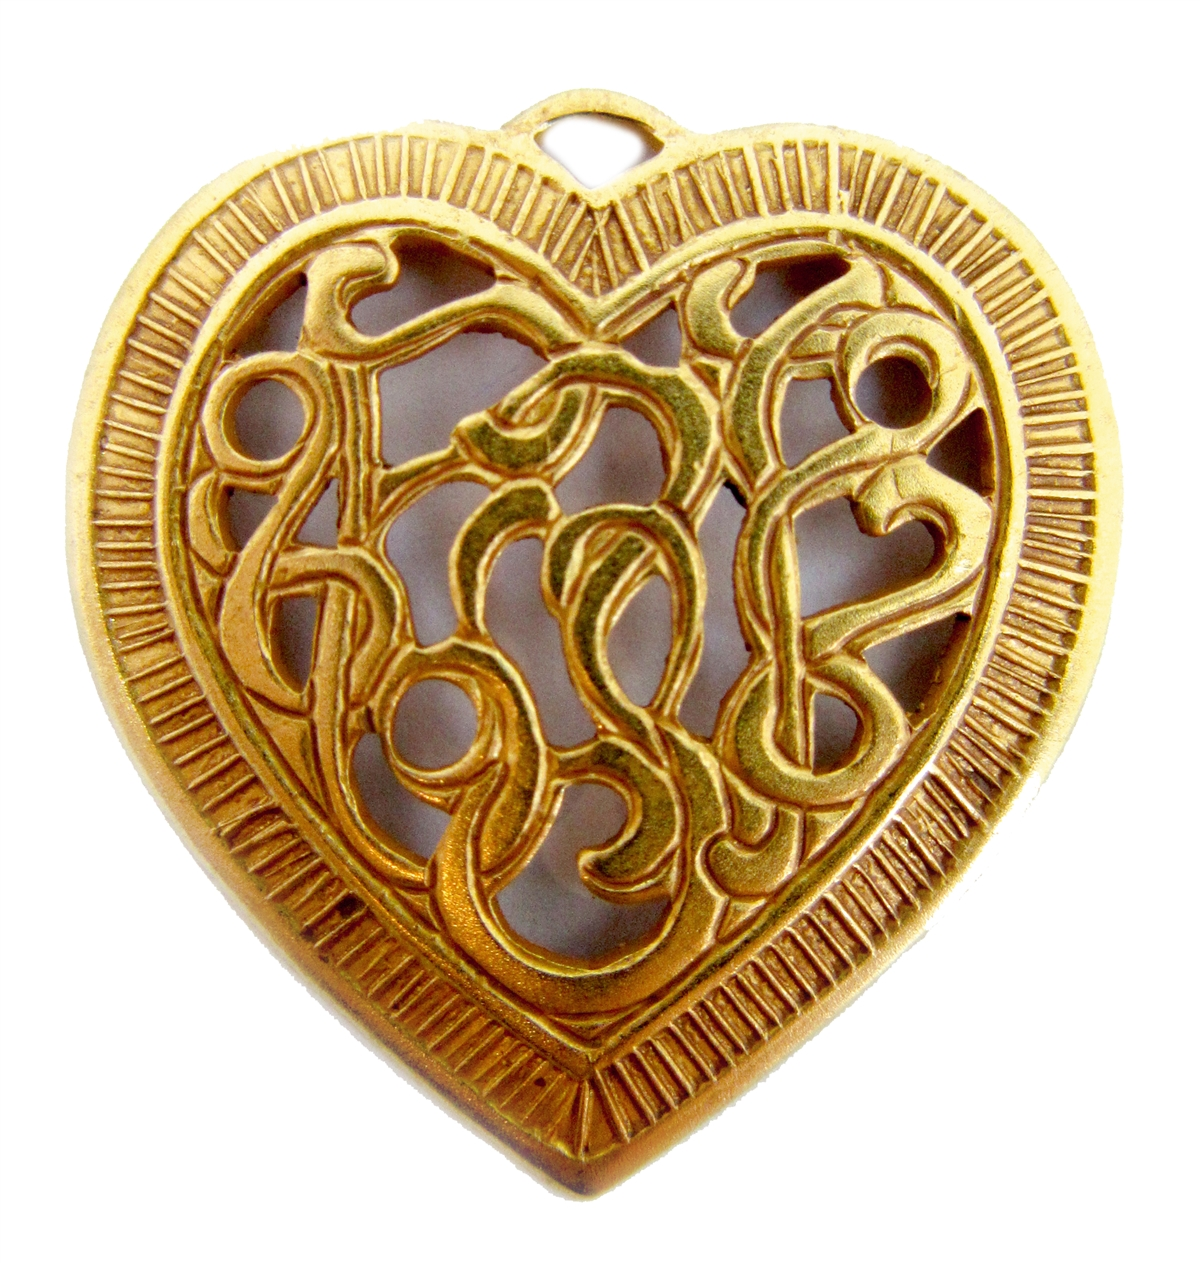 Victorian filigree heart filigree heart heart victorian pendant victorian filigree heart filigree heart heart victorian pendant pendant heart filigree classic gold plated gold aloadofball Image collections